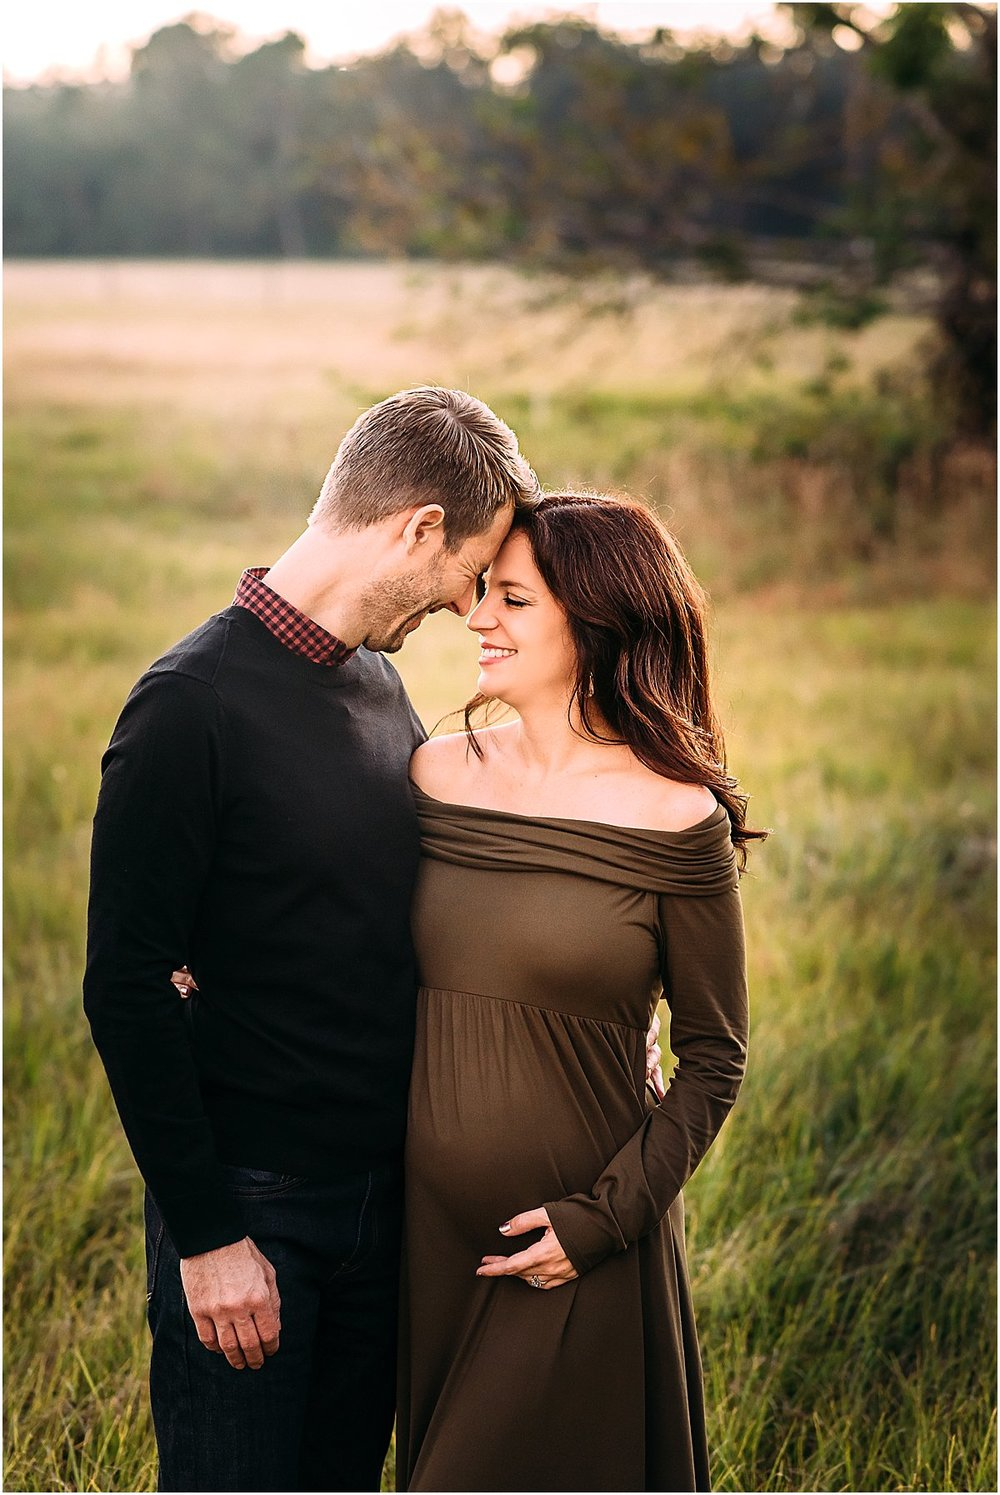 stunning couple maternity photos | Central Florida Family Photographer